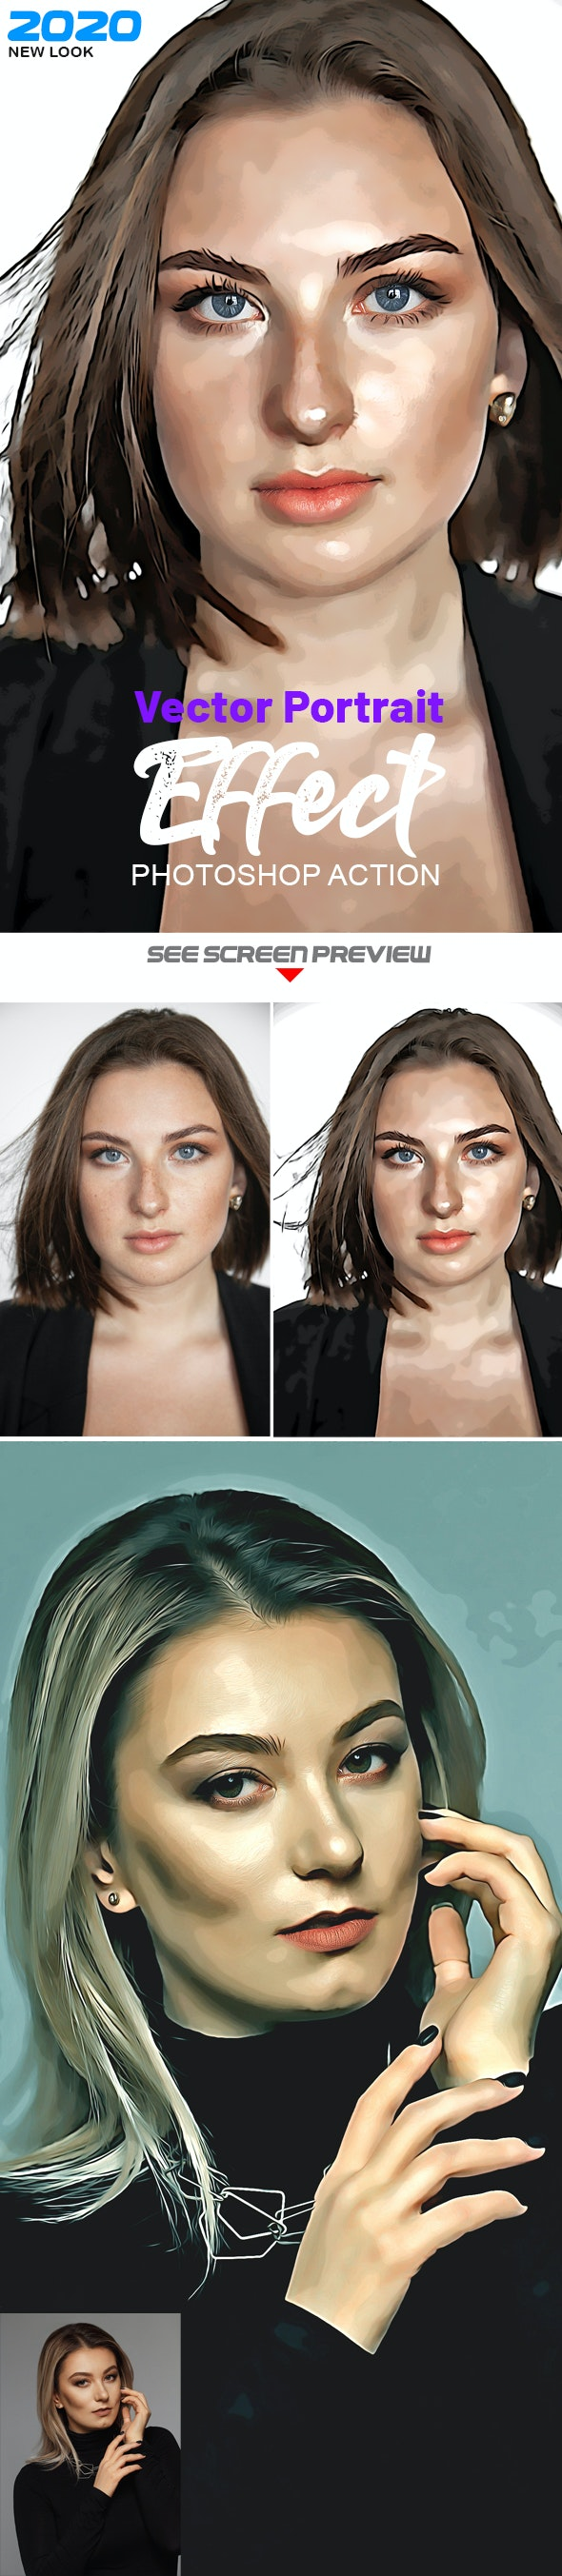 Vector Portrait Photoshop Effect - Photo Effects Actions